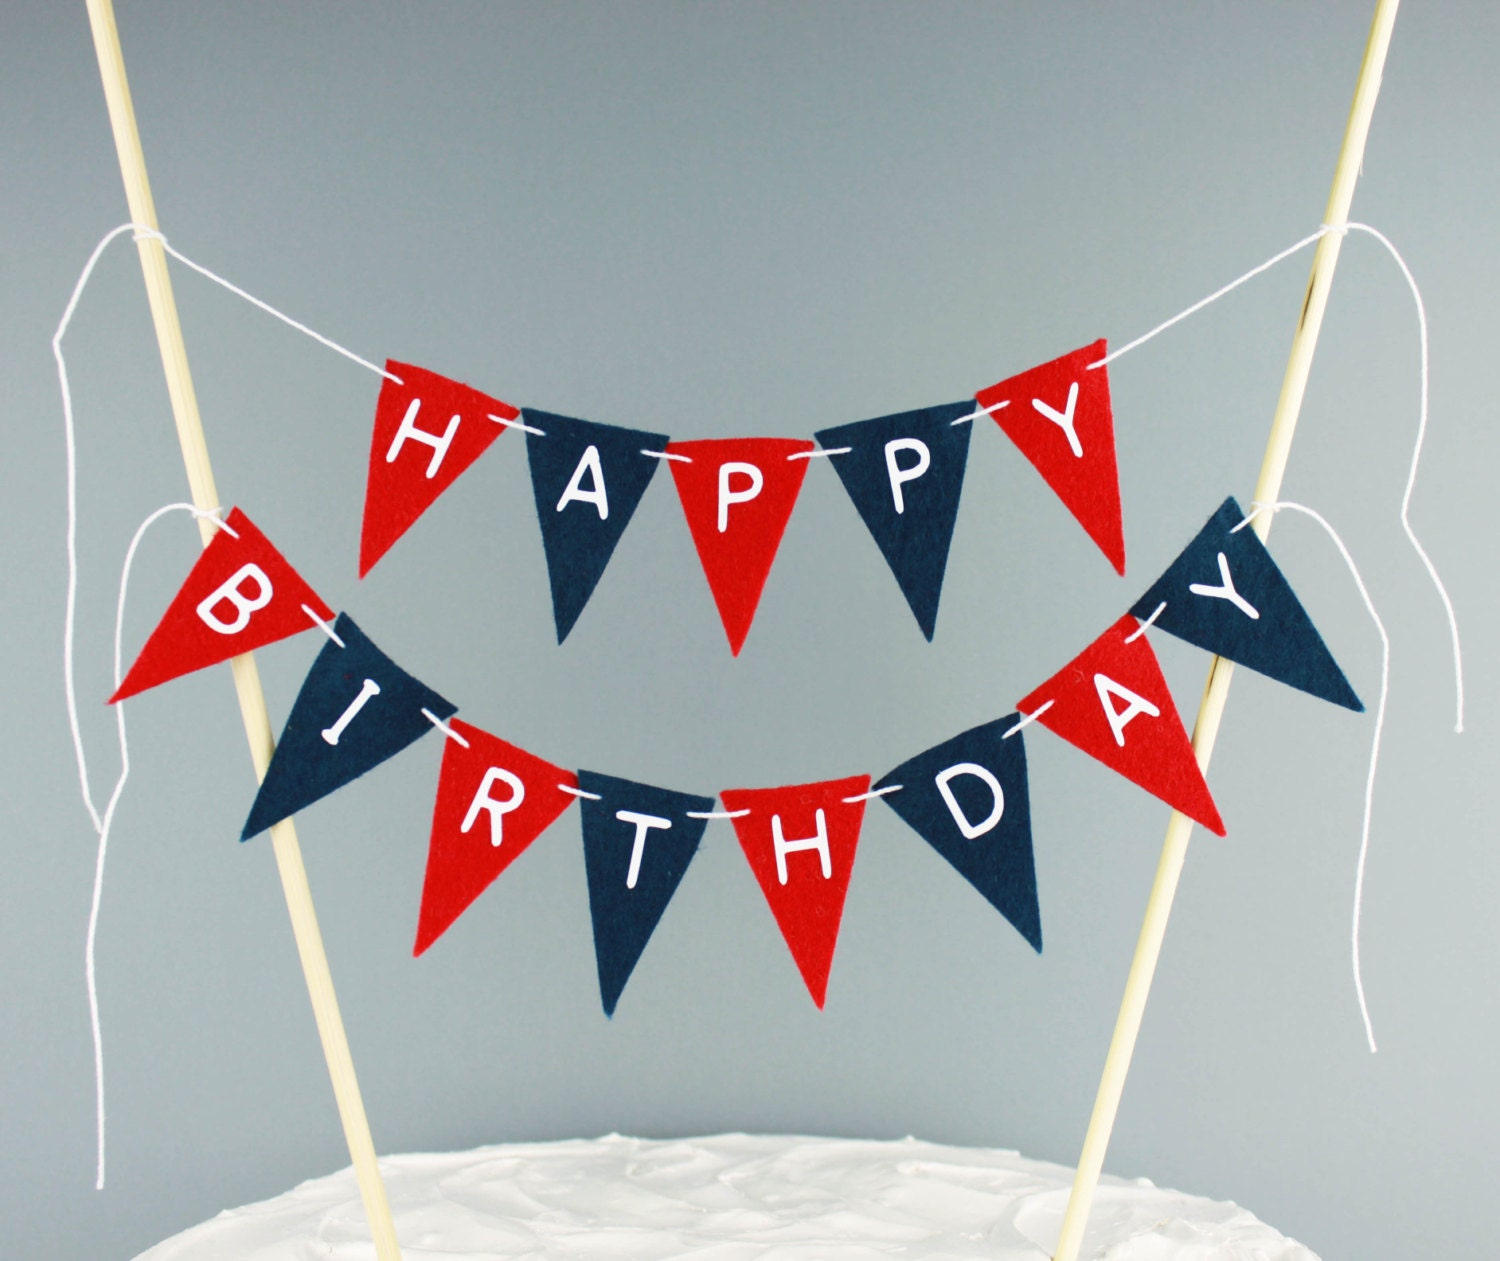 Happy Birthday Cake Banner Red and Navy Blue Cake Bunting Topper